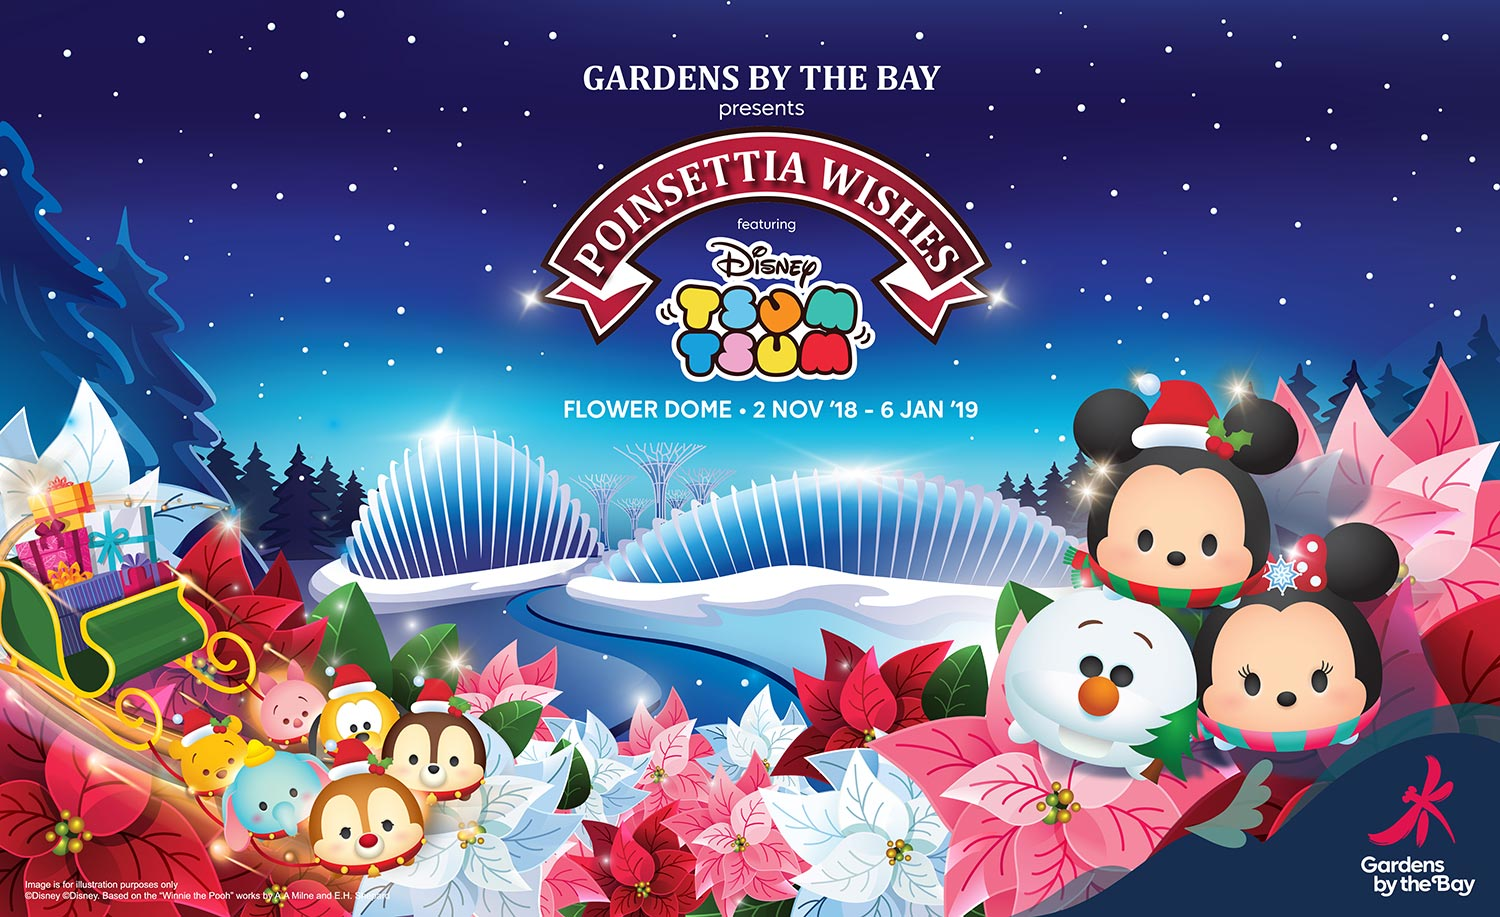 Poinsettia-Wishes-Featuring-Disney-Tsum-Tsum